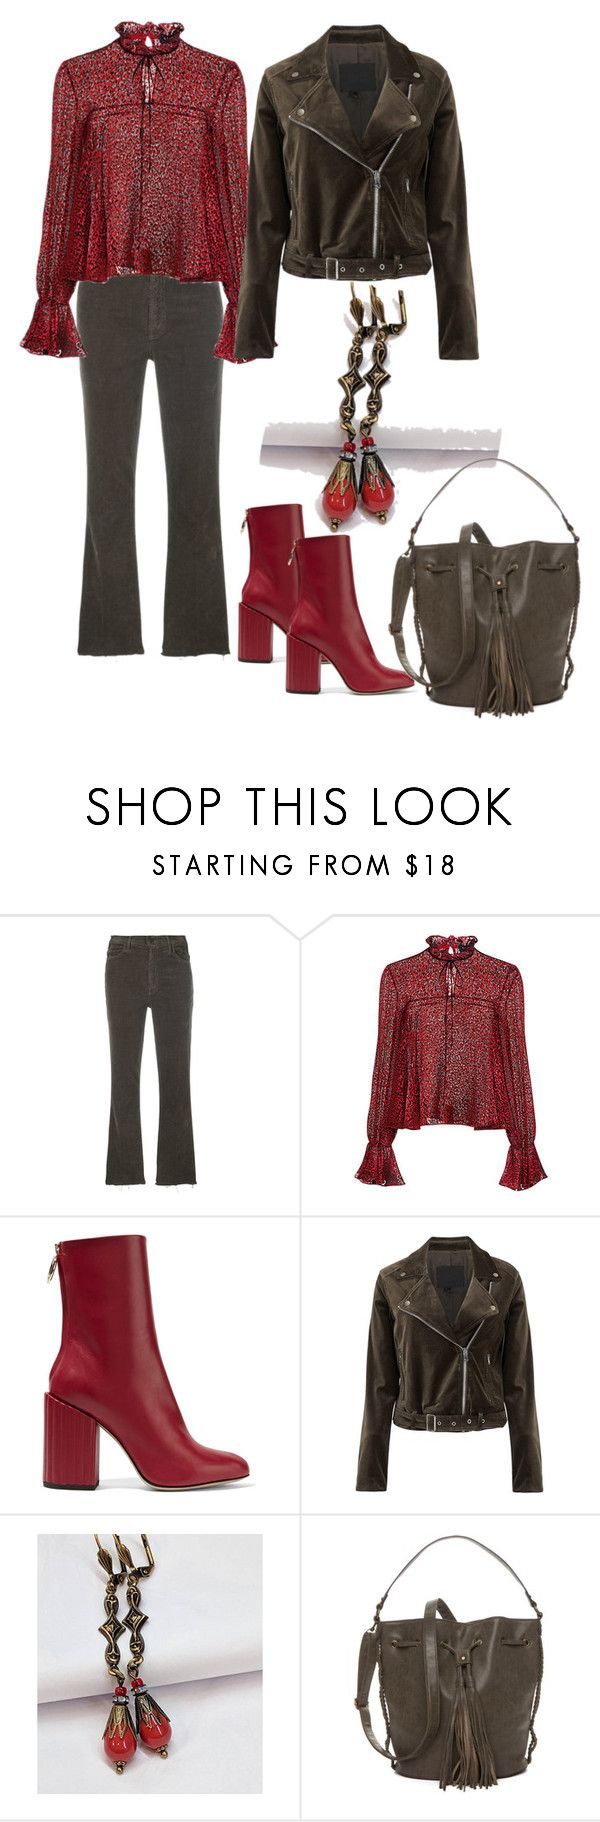 """""""Thursday's outfit, 11/2/17"""" by feralkind ❤ liked on Polyvore featuring Mother, Saloni, Petar Petrov, Paige Denim and True Craft"""